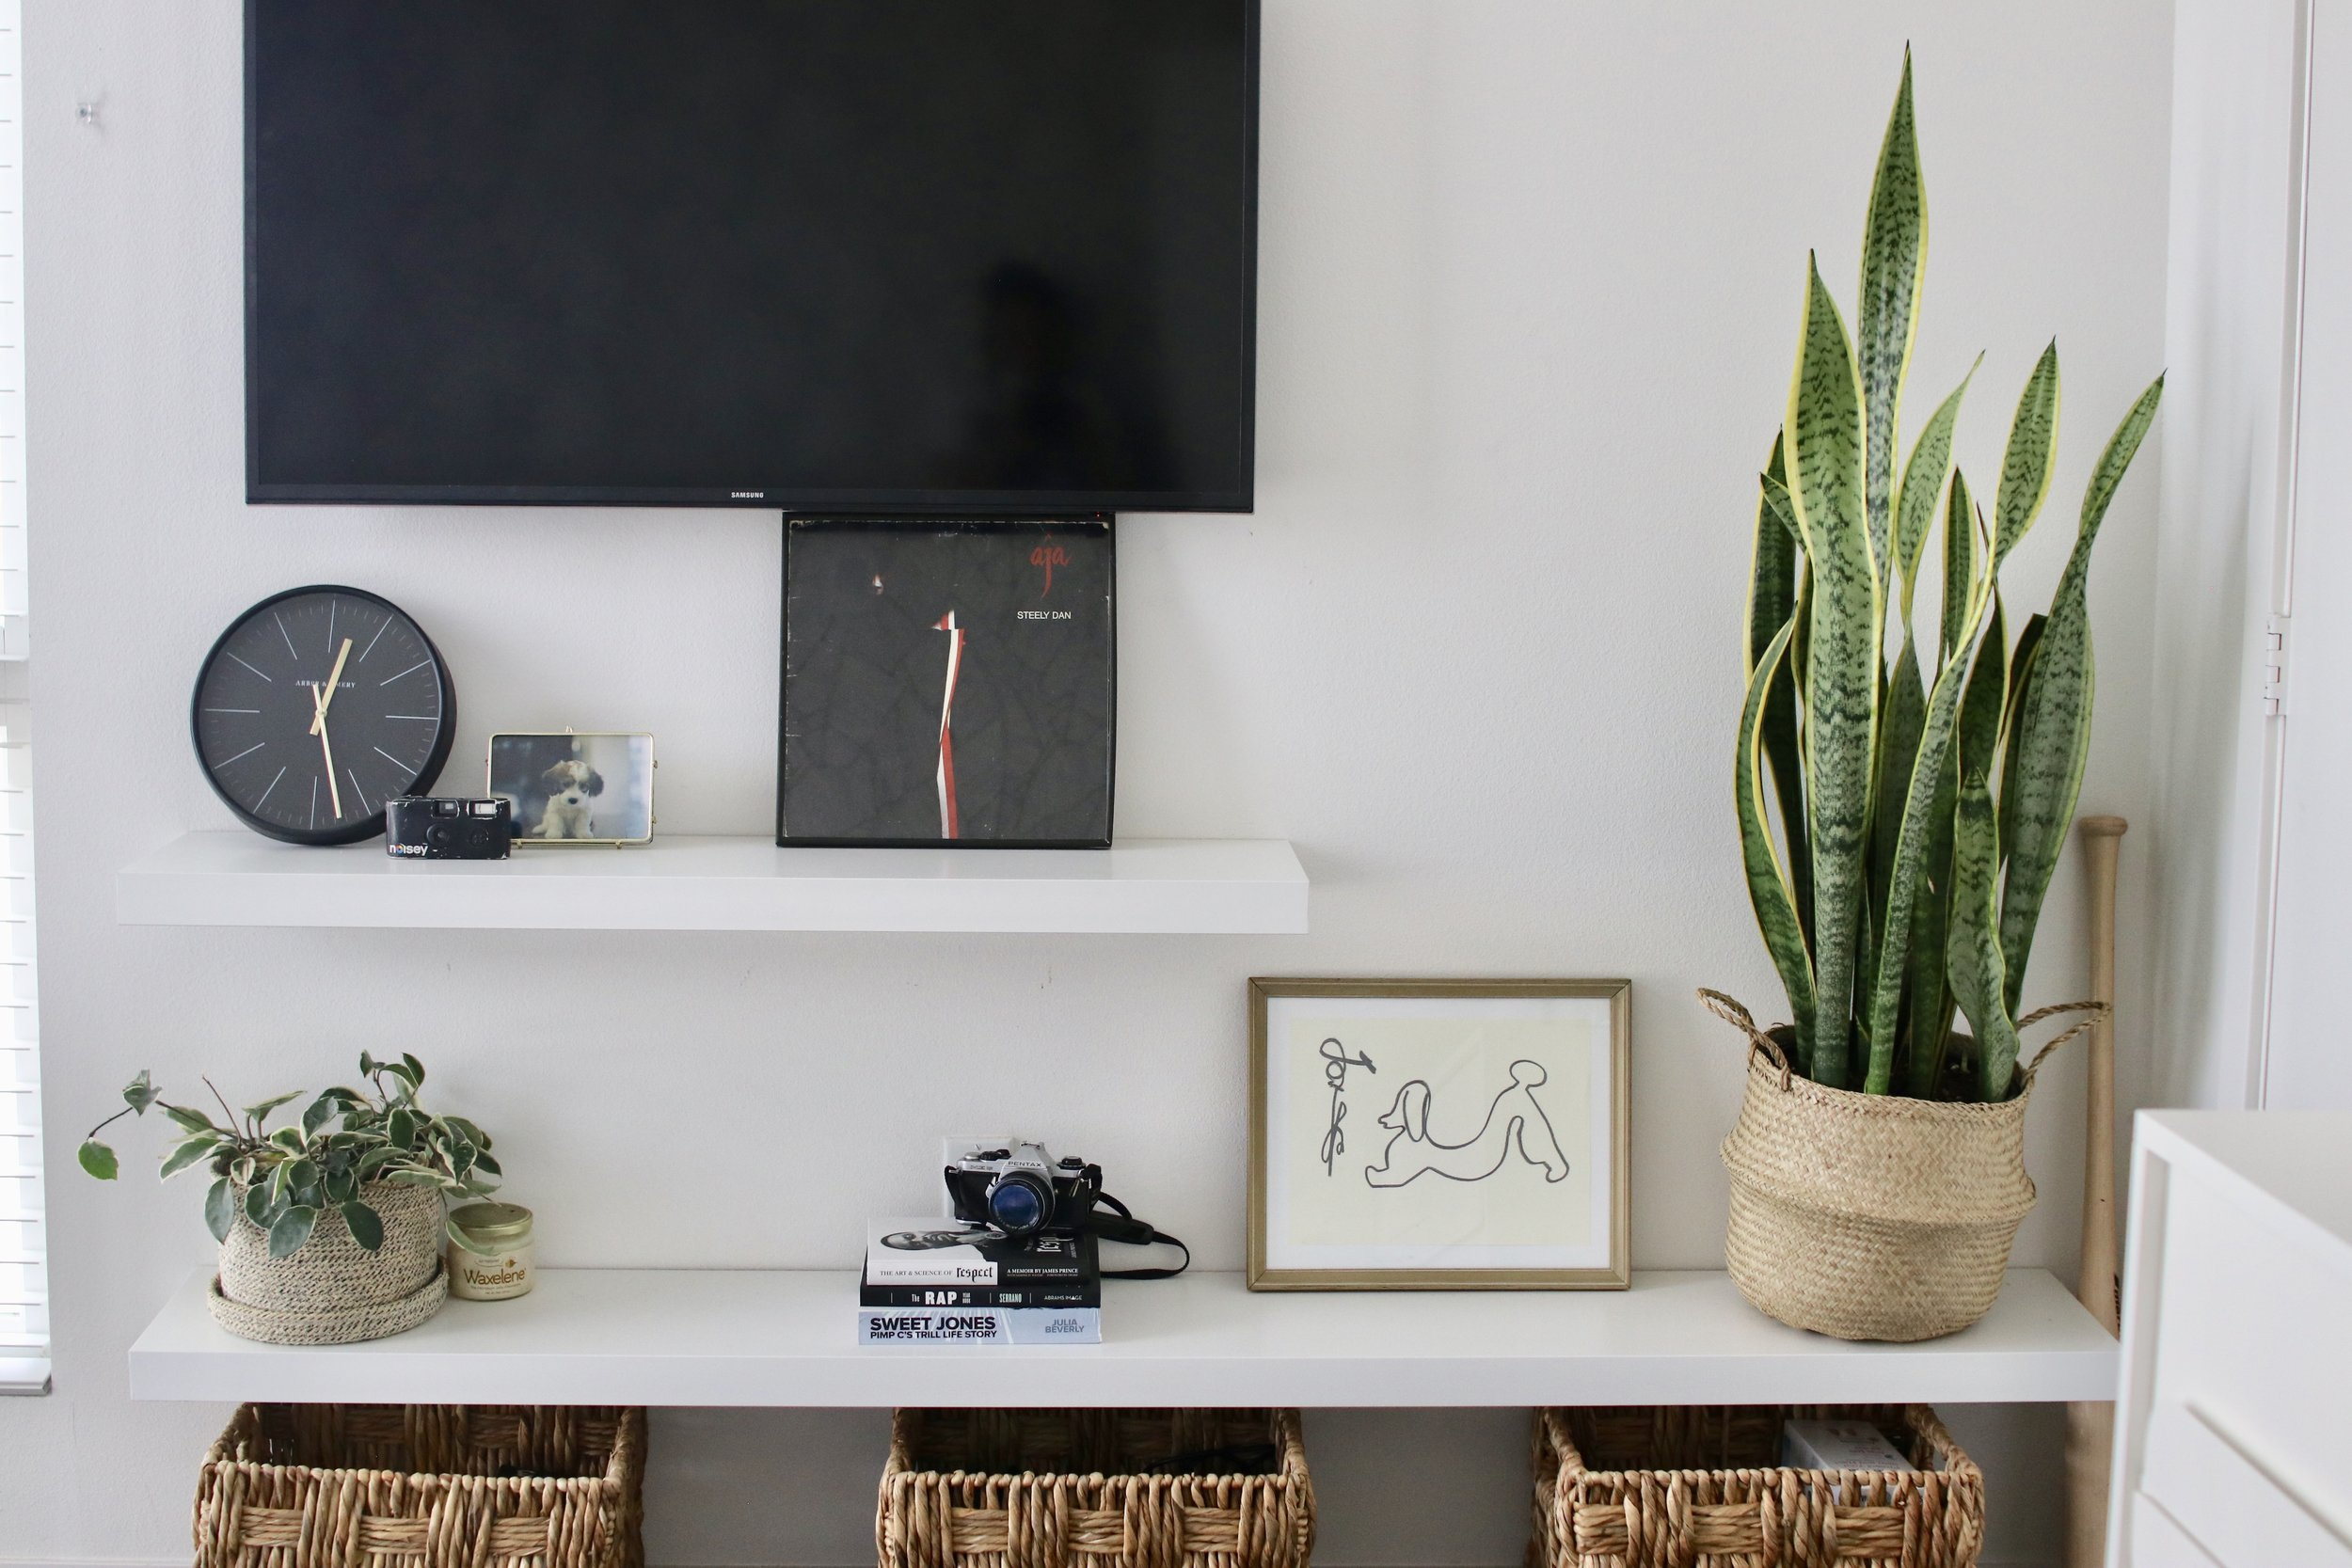 TV and shelf minimal decor